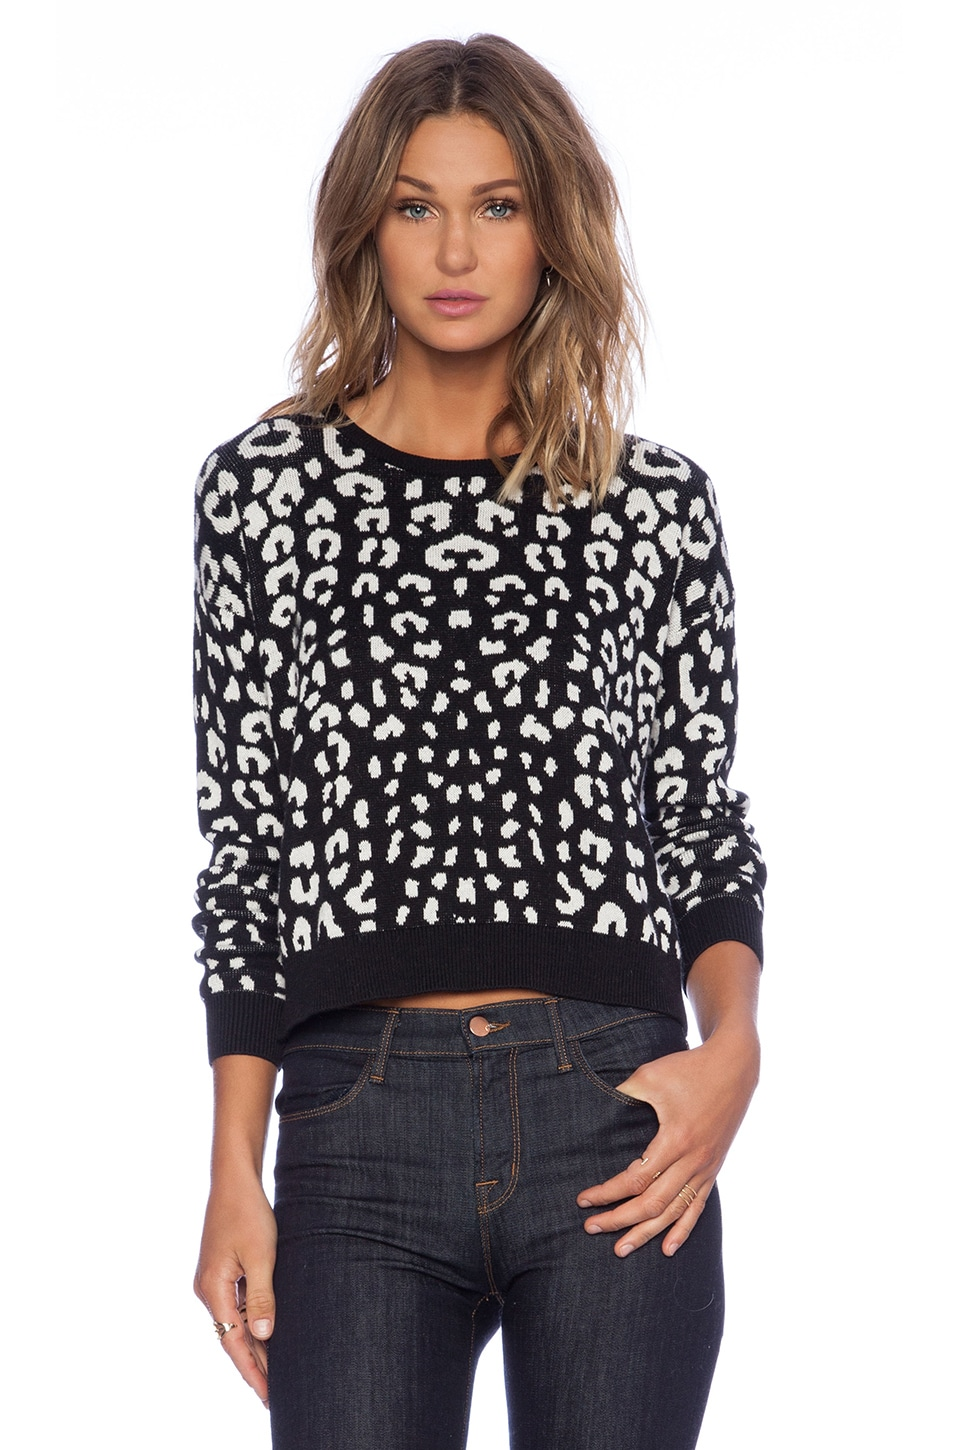 C&C California Leopard Jacquard Crop Sweater in Black